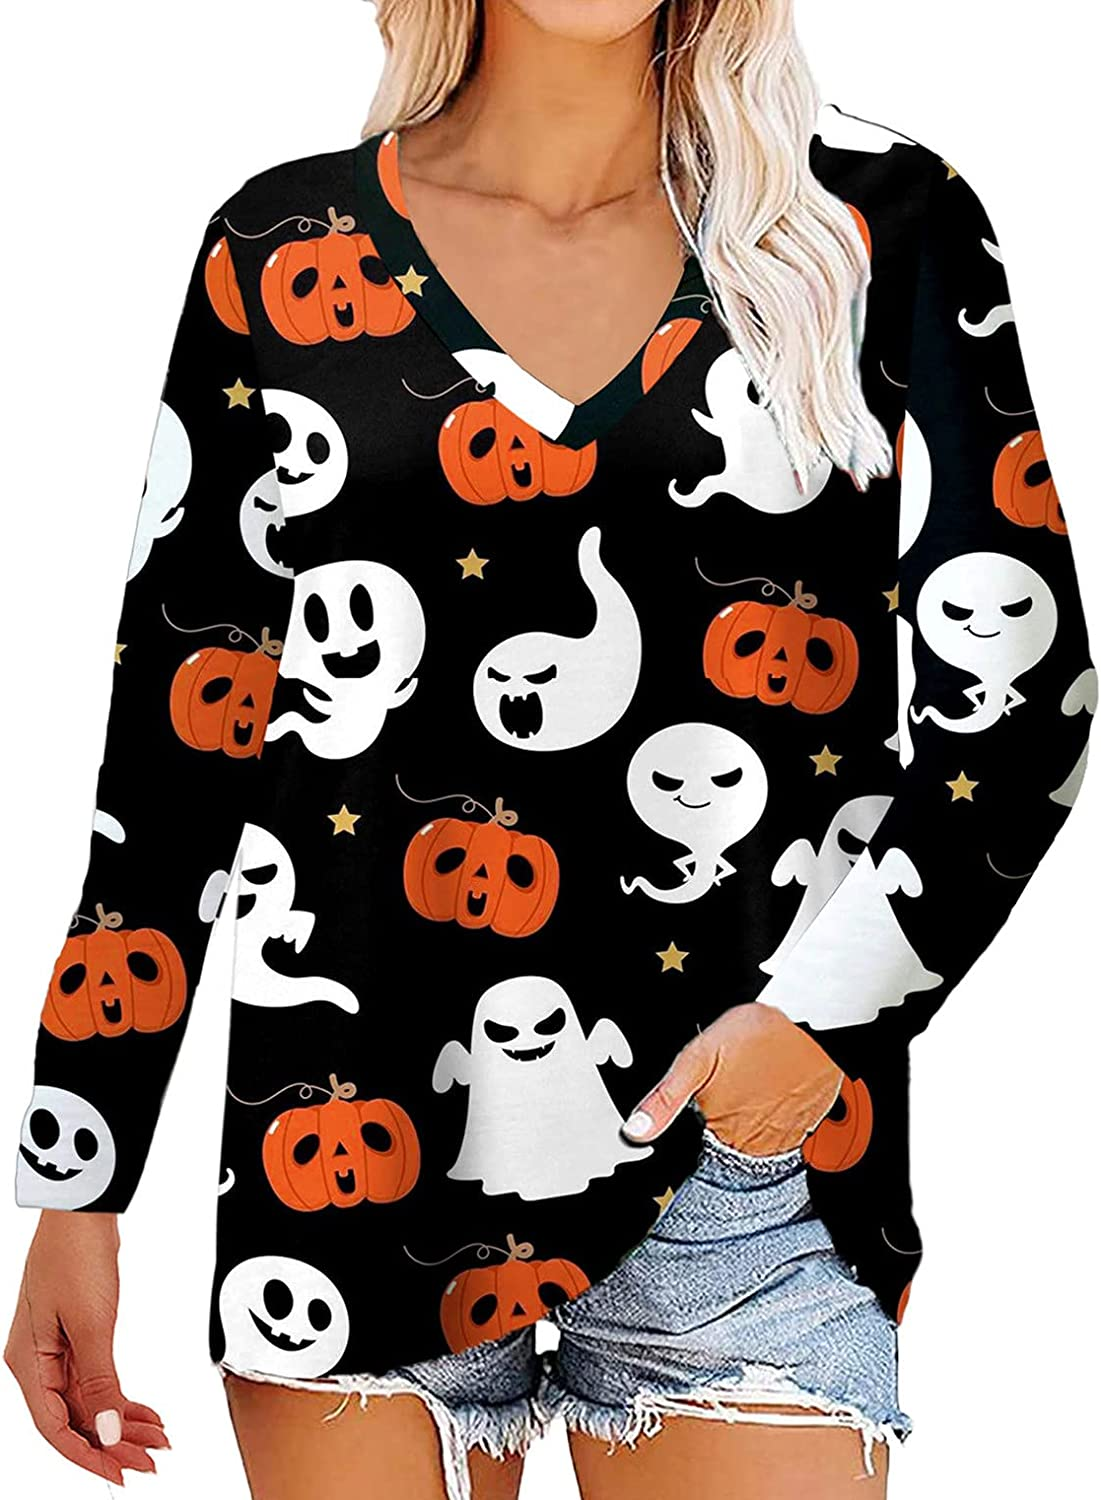 Jacksonville Mall Women's Halloween Shirts Funny Pumpkin Printed Pullo Animer and price revision Long Sleeve